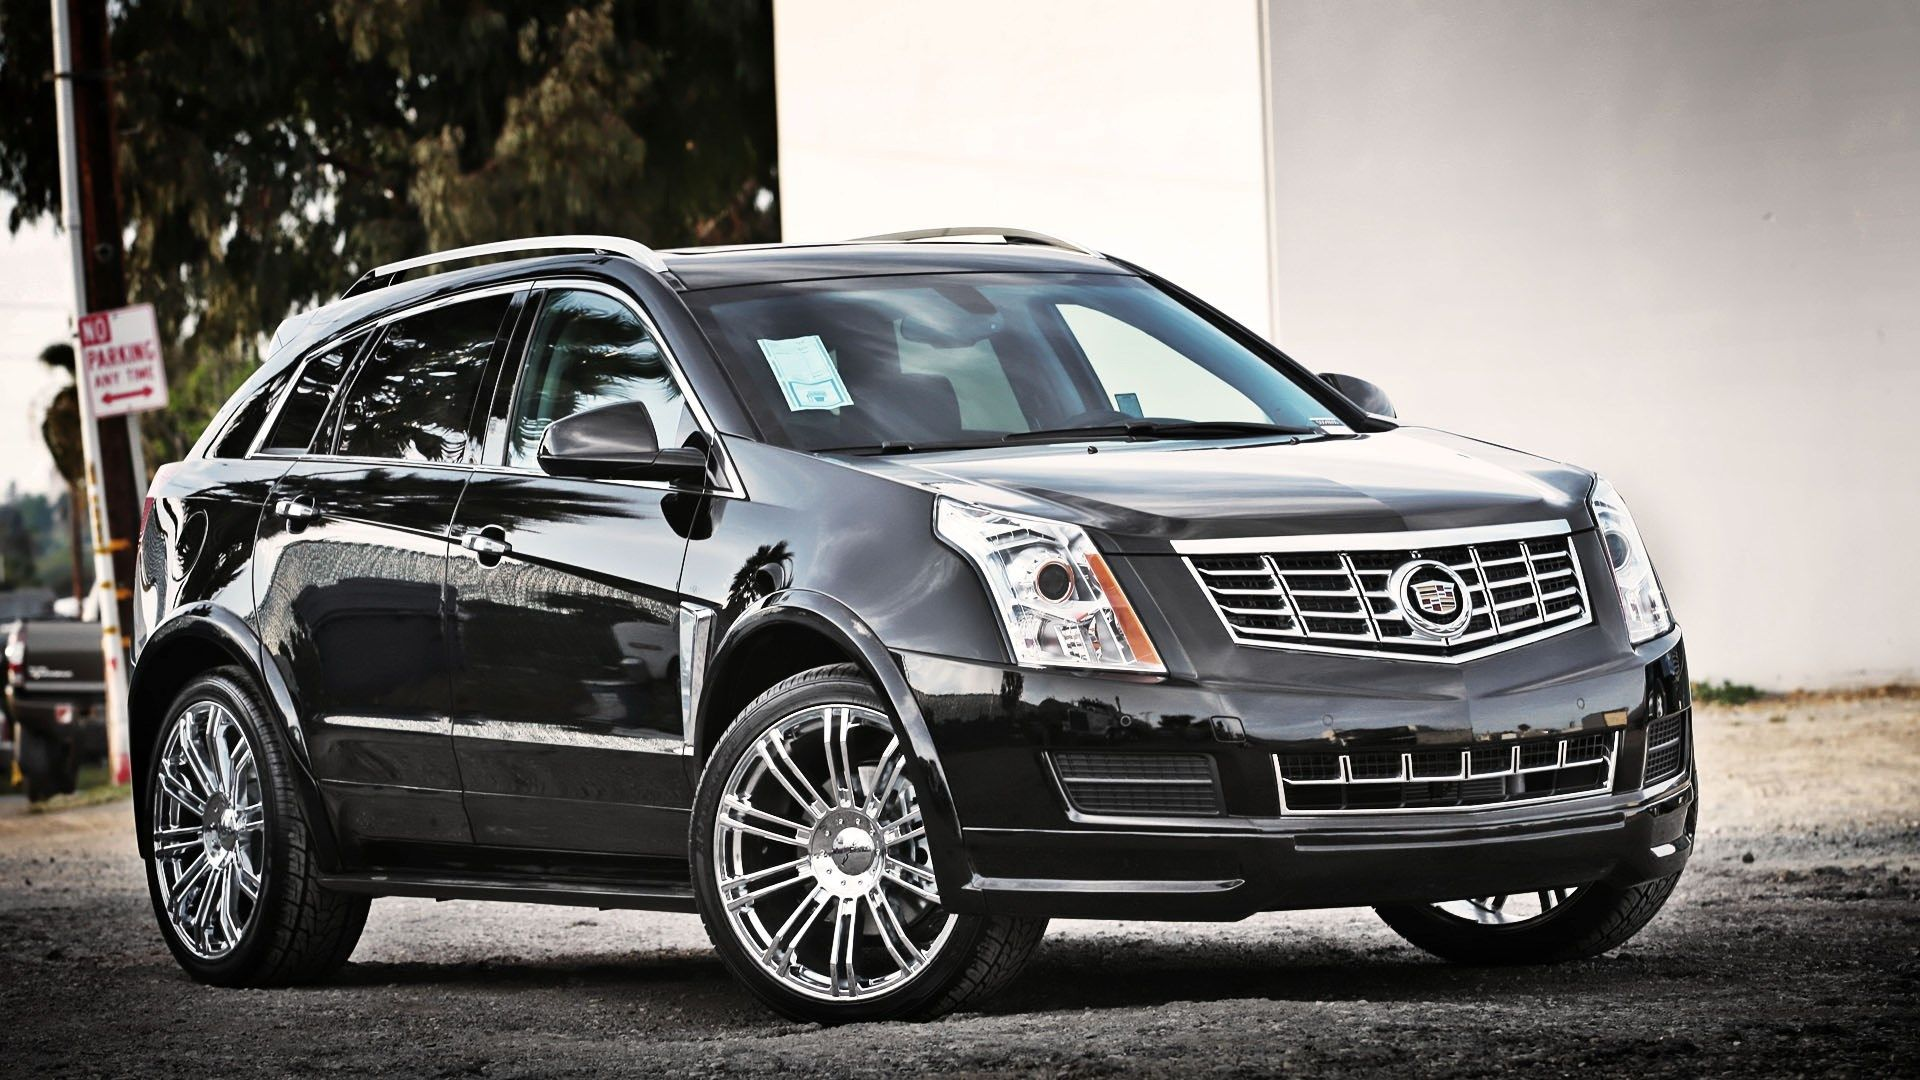 2018 cadillac srx will be suv car that have comfort design of the interior this car is predicted will have some competitor in the crossover suv car class